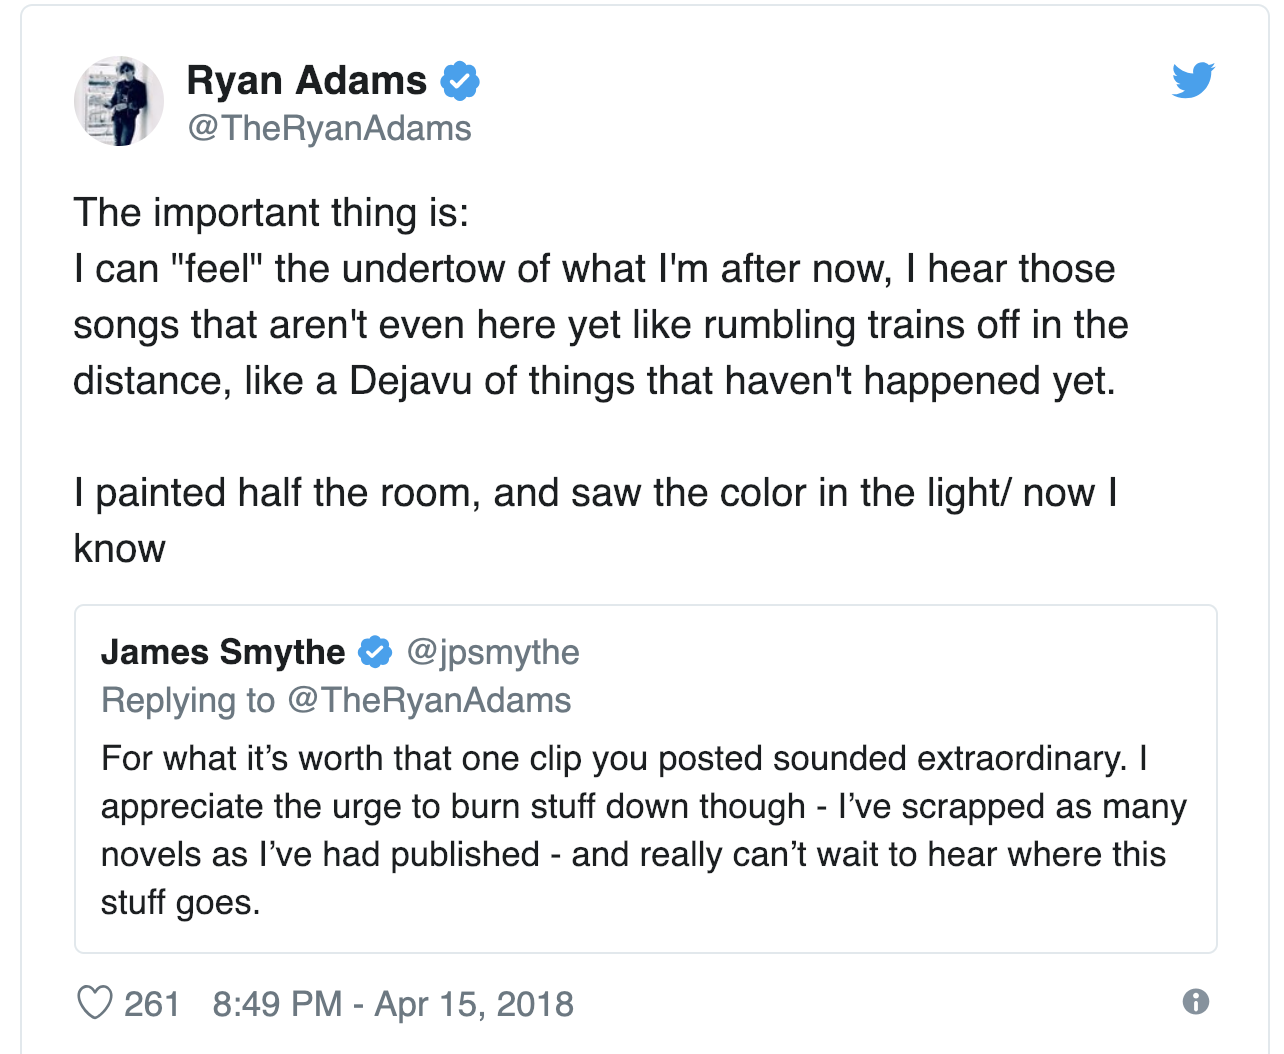 Ryan Adams second tweet about the album Big Colors